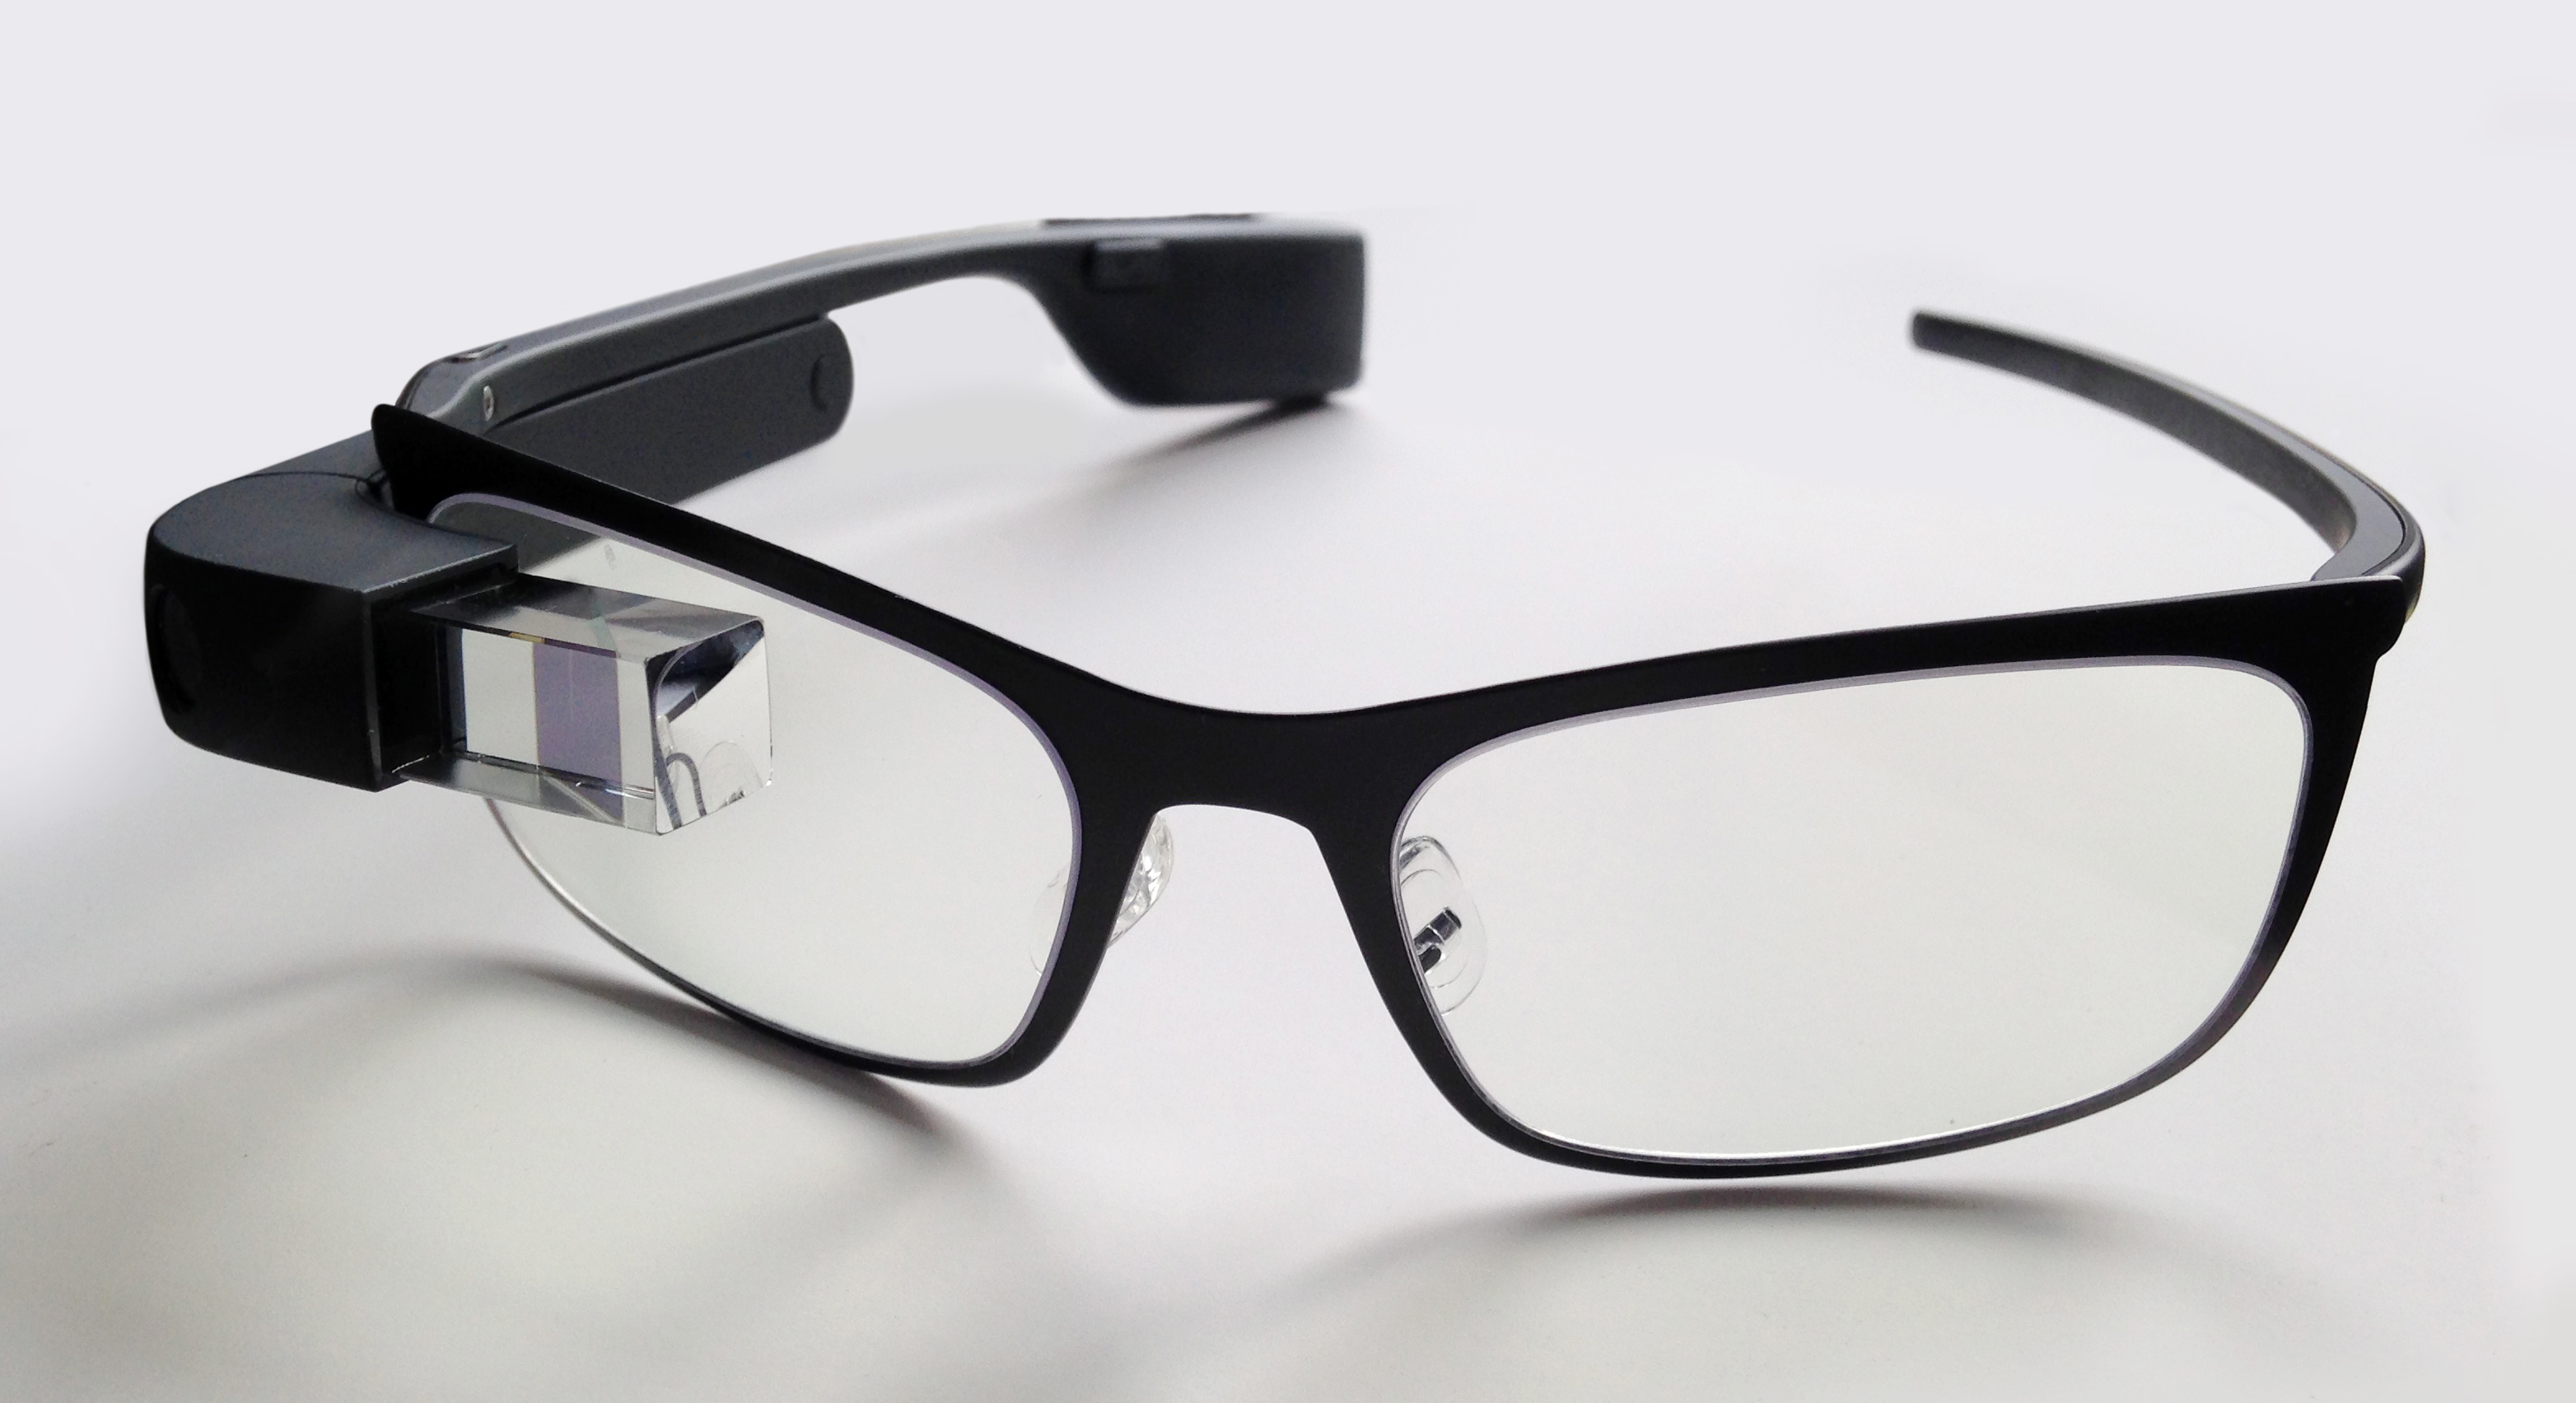 Ejemplo de HMD: Google Glasses